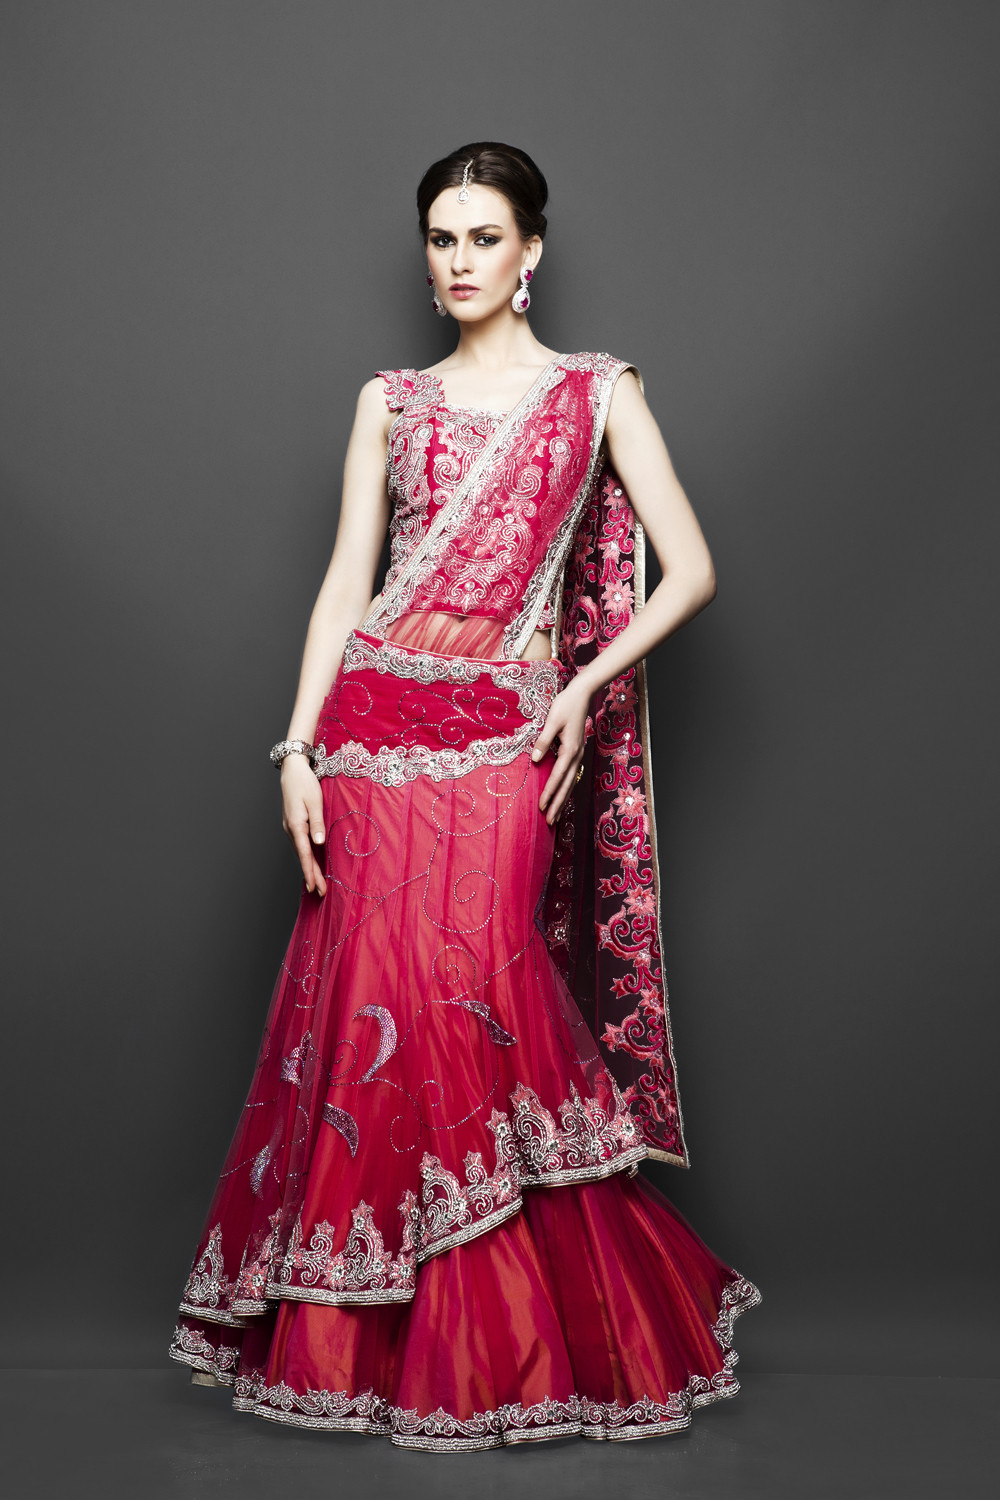 Indian Wedding Gown  Indian wedding dresses